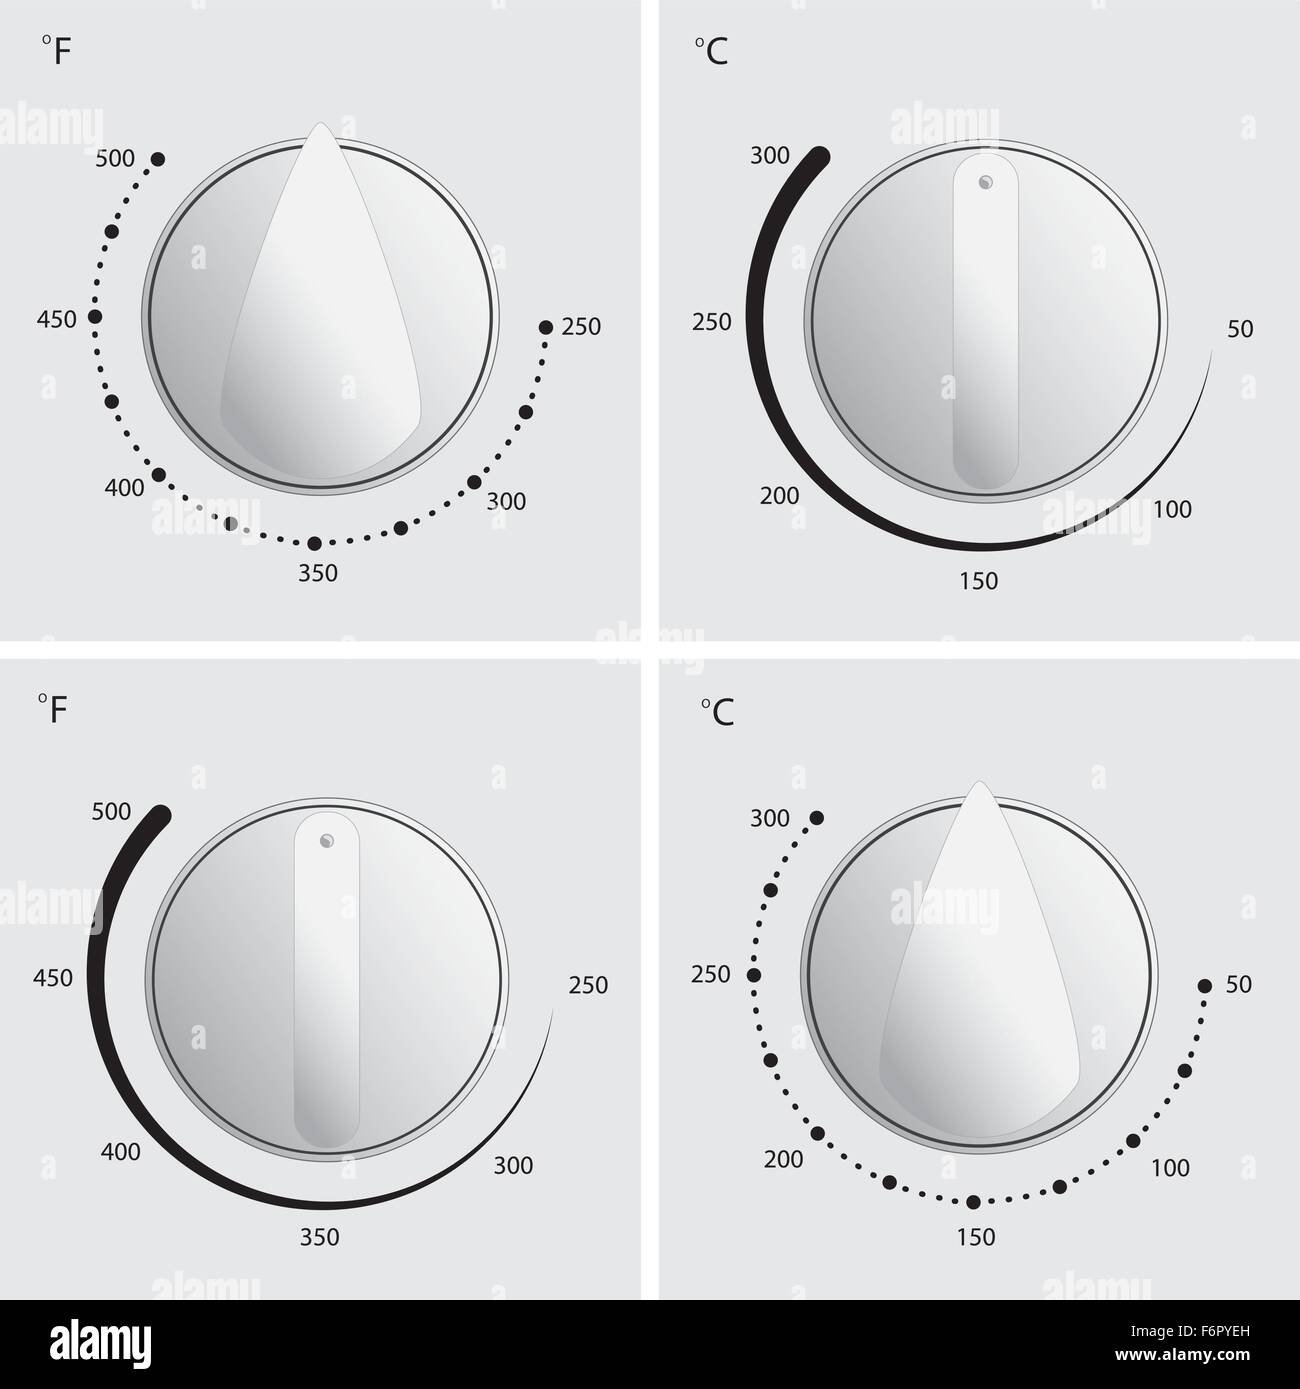 Oven dial vector in 4 different styles with celcius and fahrenheit temperature measurements - Stock Vector